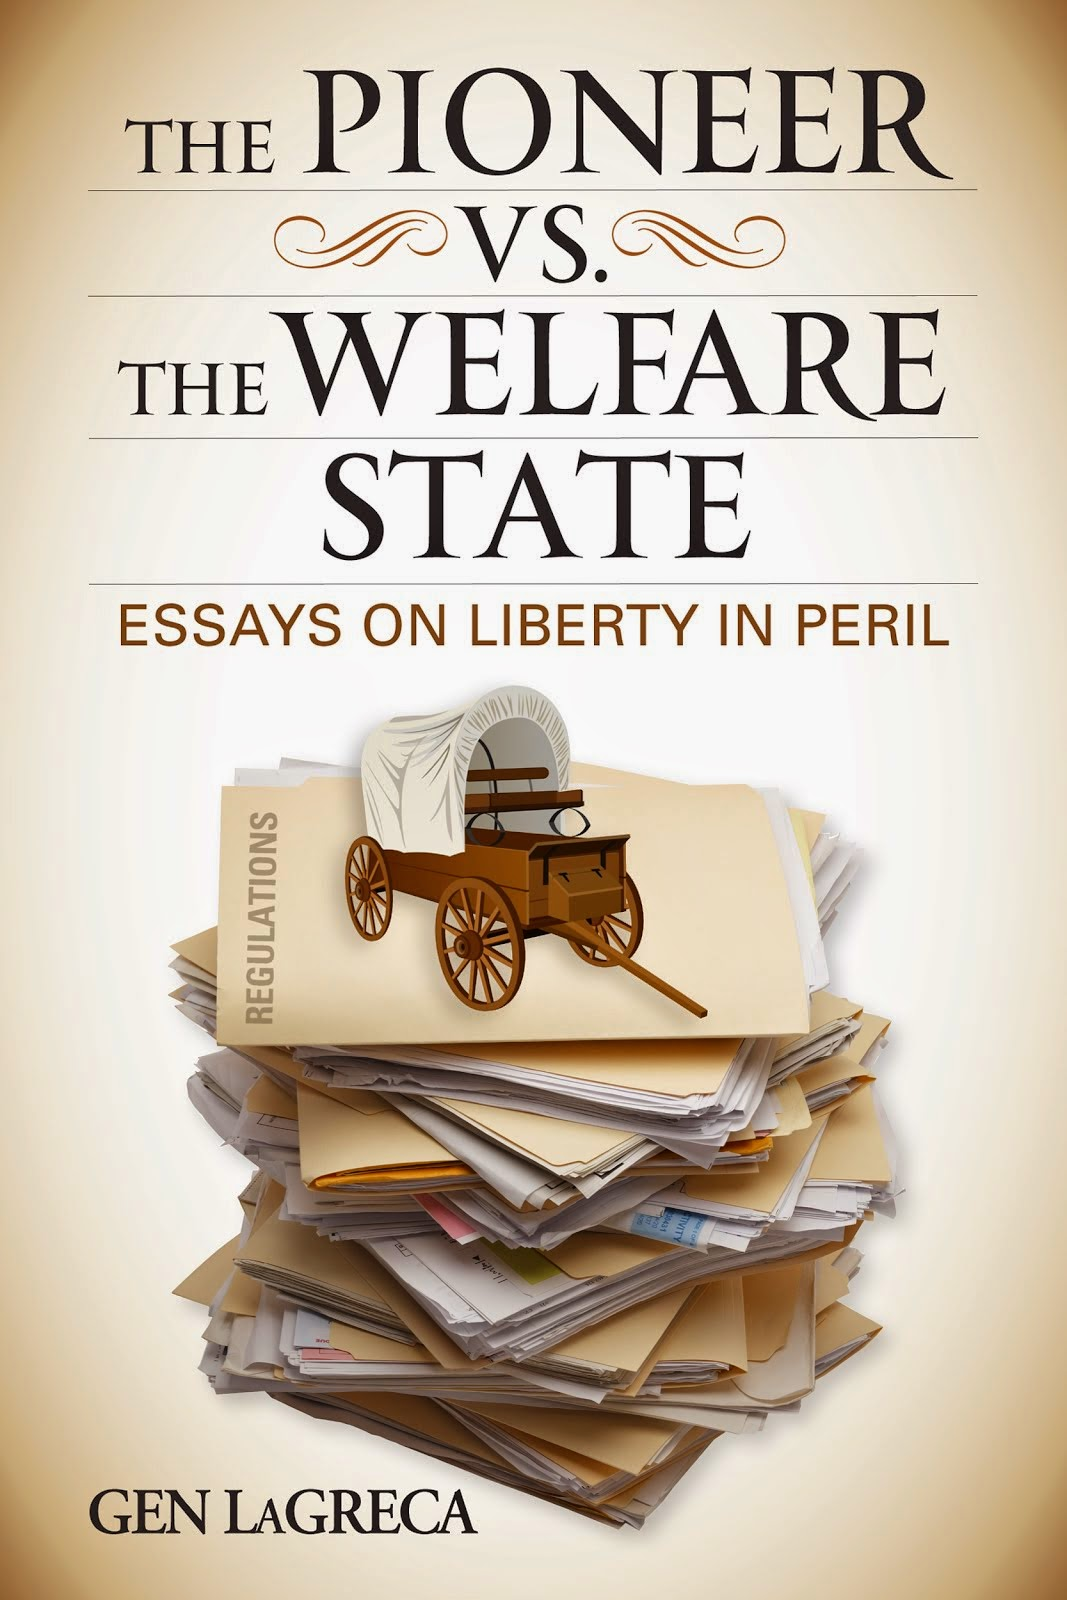 The Pioneer vs. the Welfare State: Essays on Liberty in Peril by Gen LaGreca